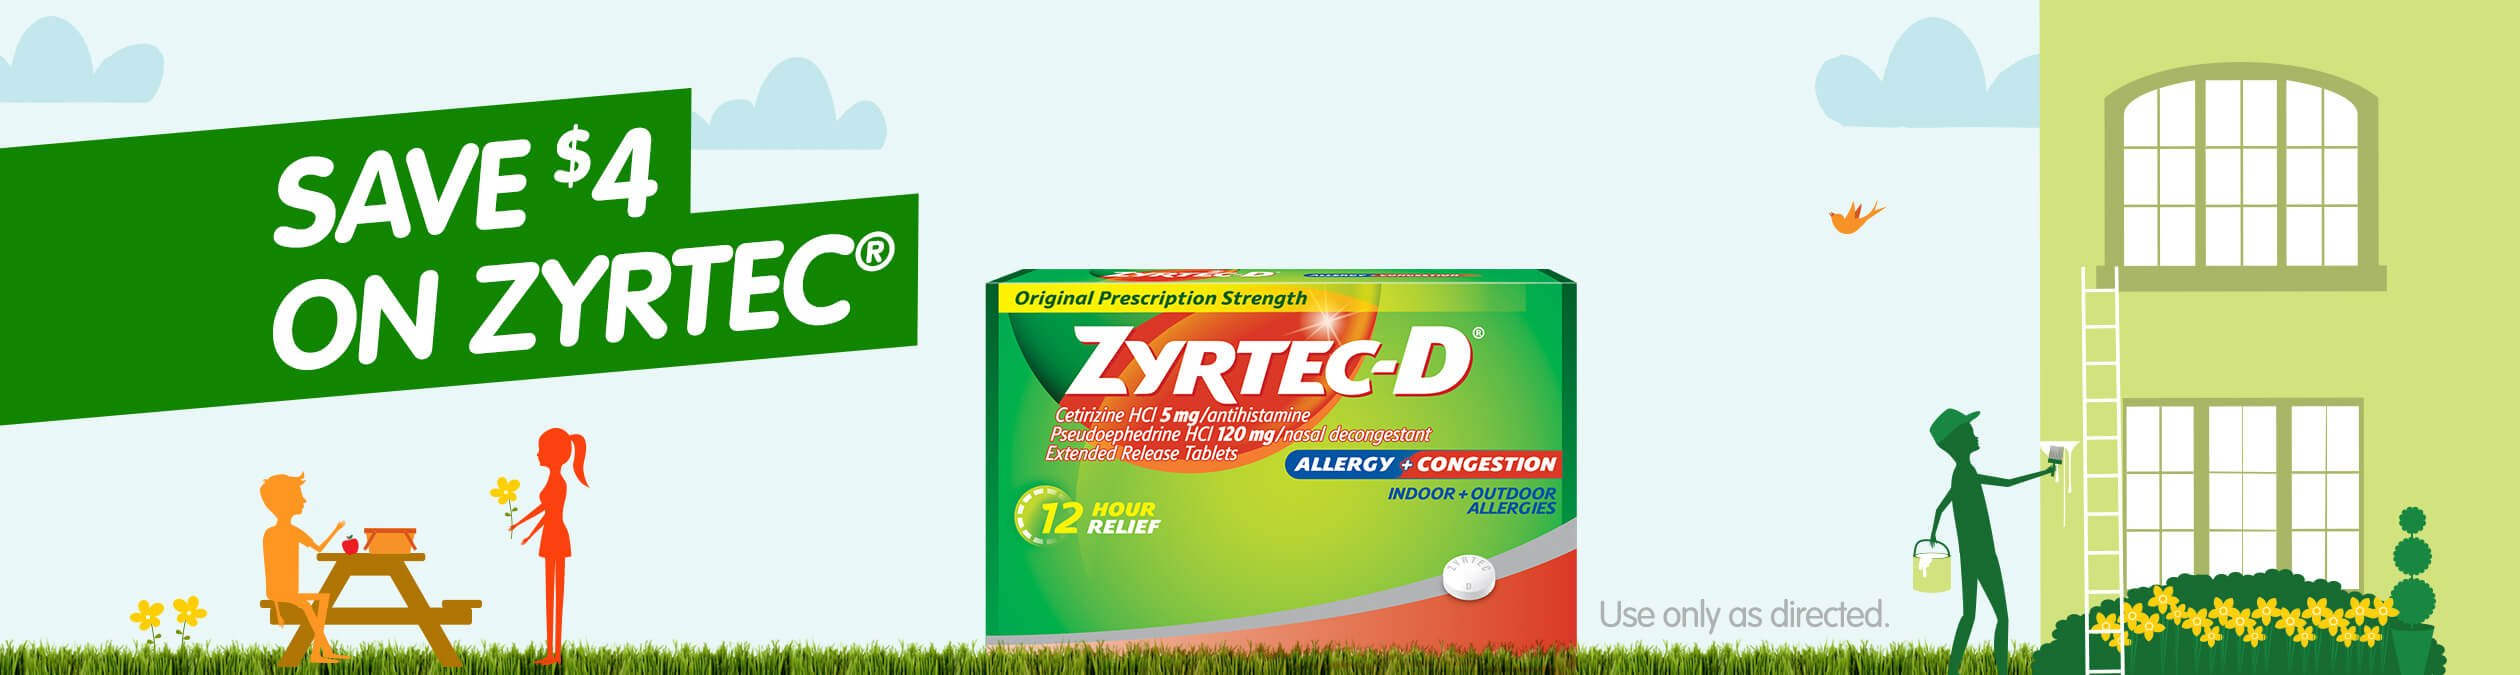 try zyrtec®-d to powerfully clear your blocked nose and relieve your